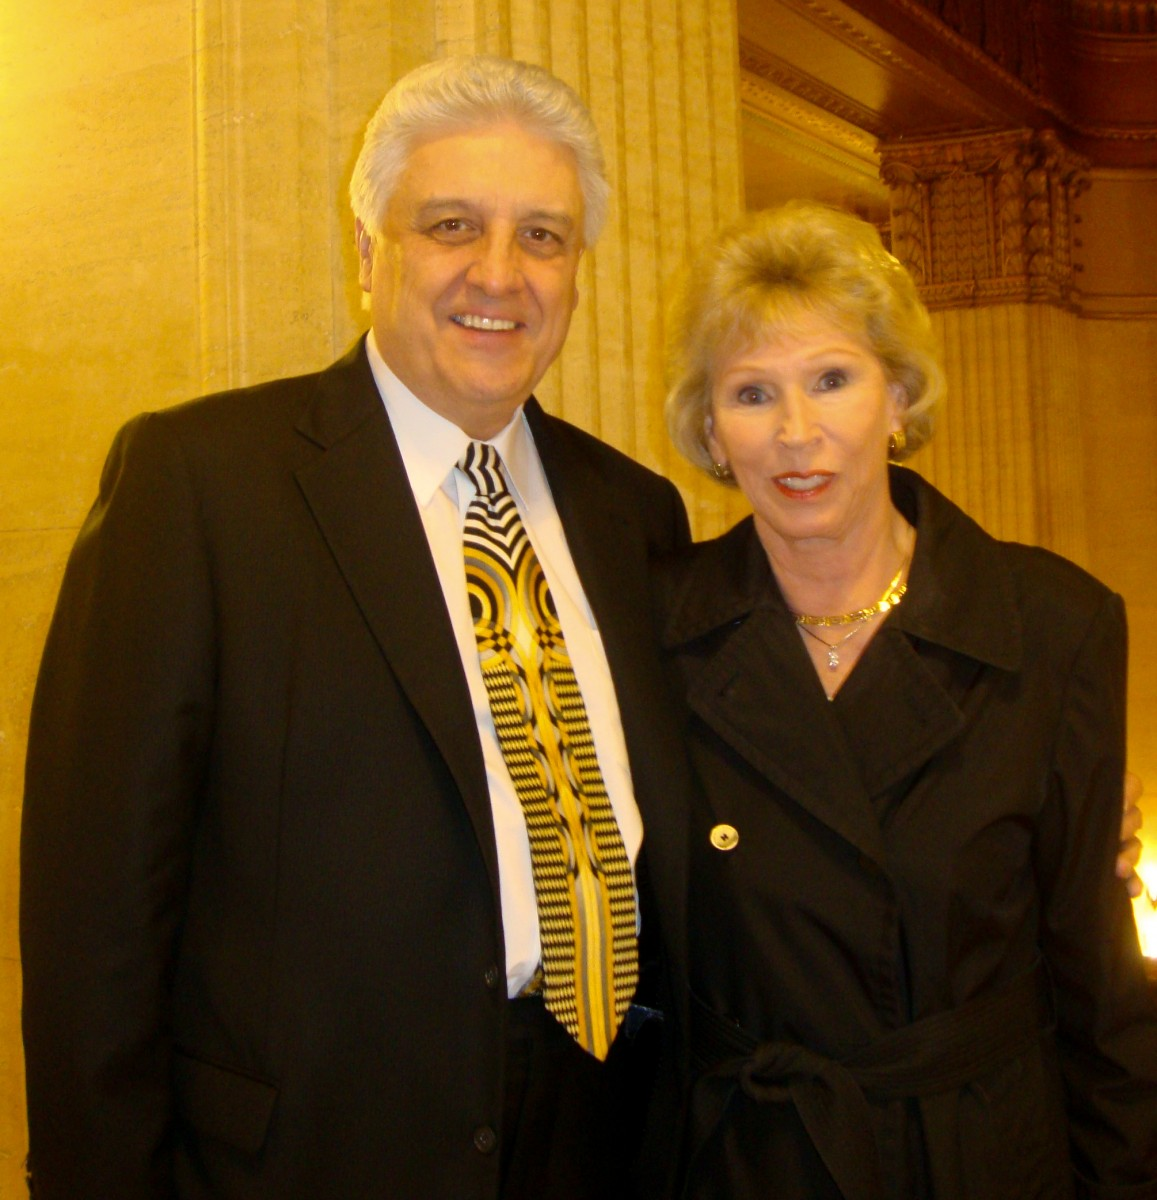 Mark Ullan, founder and CEO of Unique Solutions, and his wife Joyce enjoyed Shen Yun Performing Arts on April 21 at Chicago's Civic Opera House.(Paul Darin/The Epoch Times)